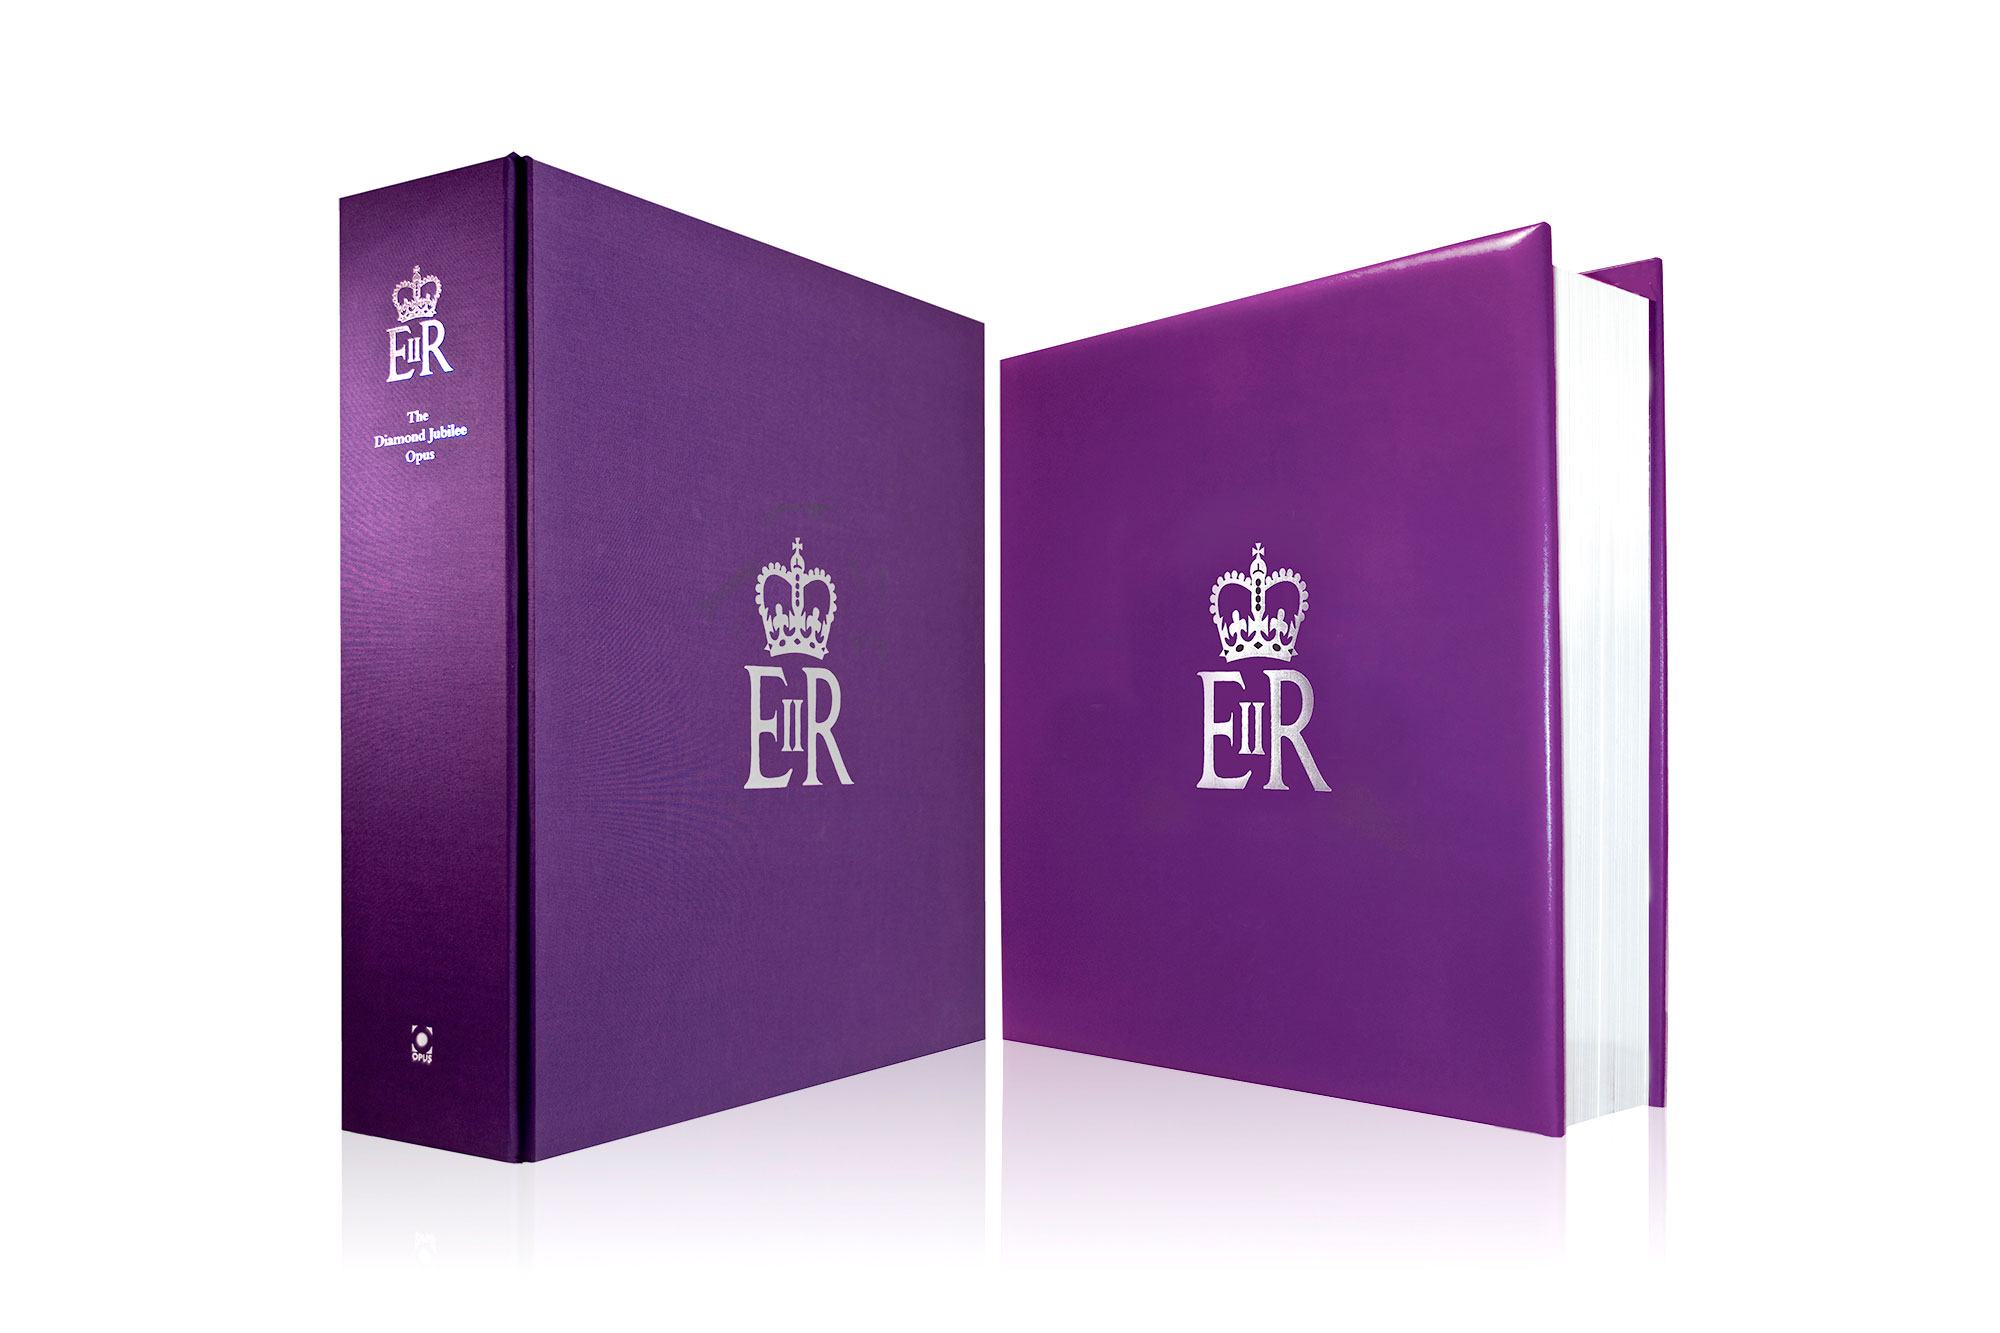 The book on the right and its protective case on the left, with the Royal Cypher foil stamped on the spine and the front. Design by Martin Sully.